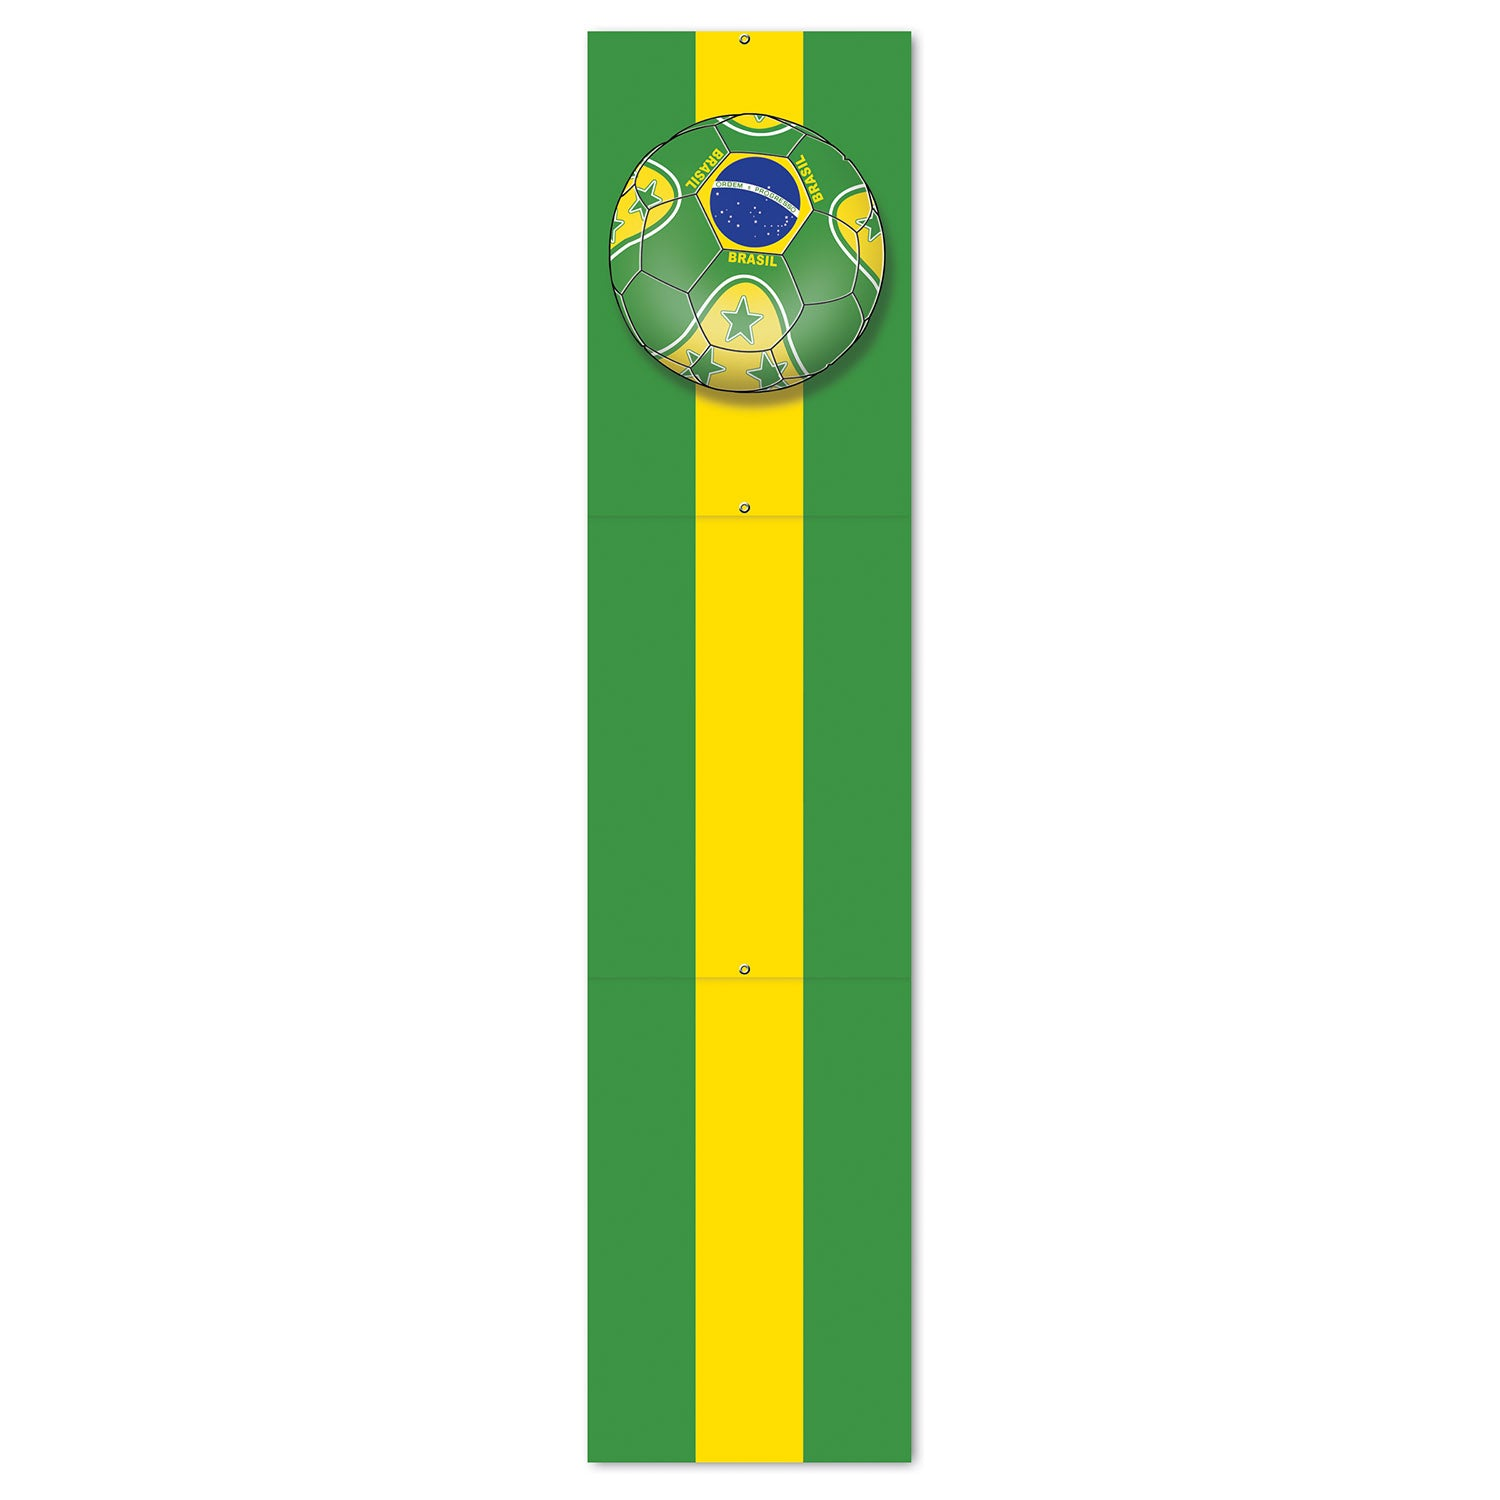 Jointed Pull-Down Cutout - Brasil by Beistle - Soccer Theme Decorations